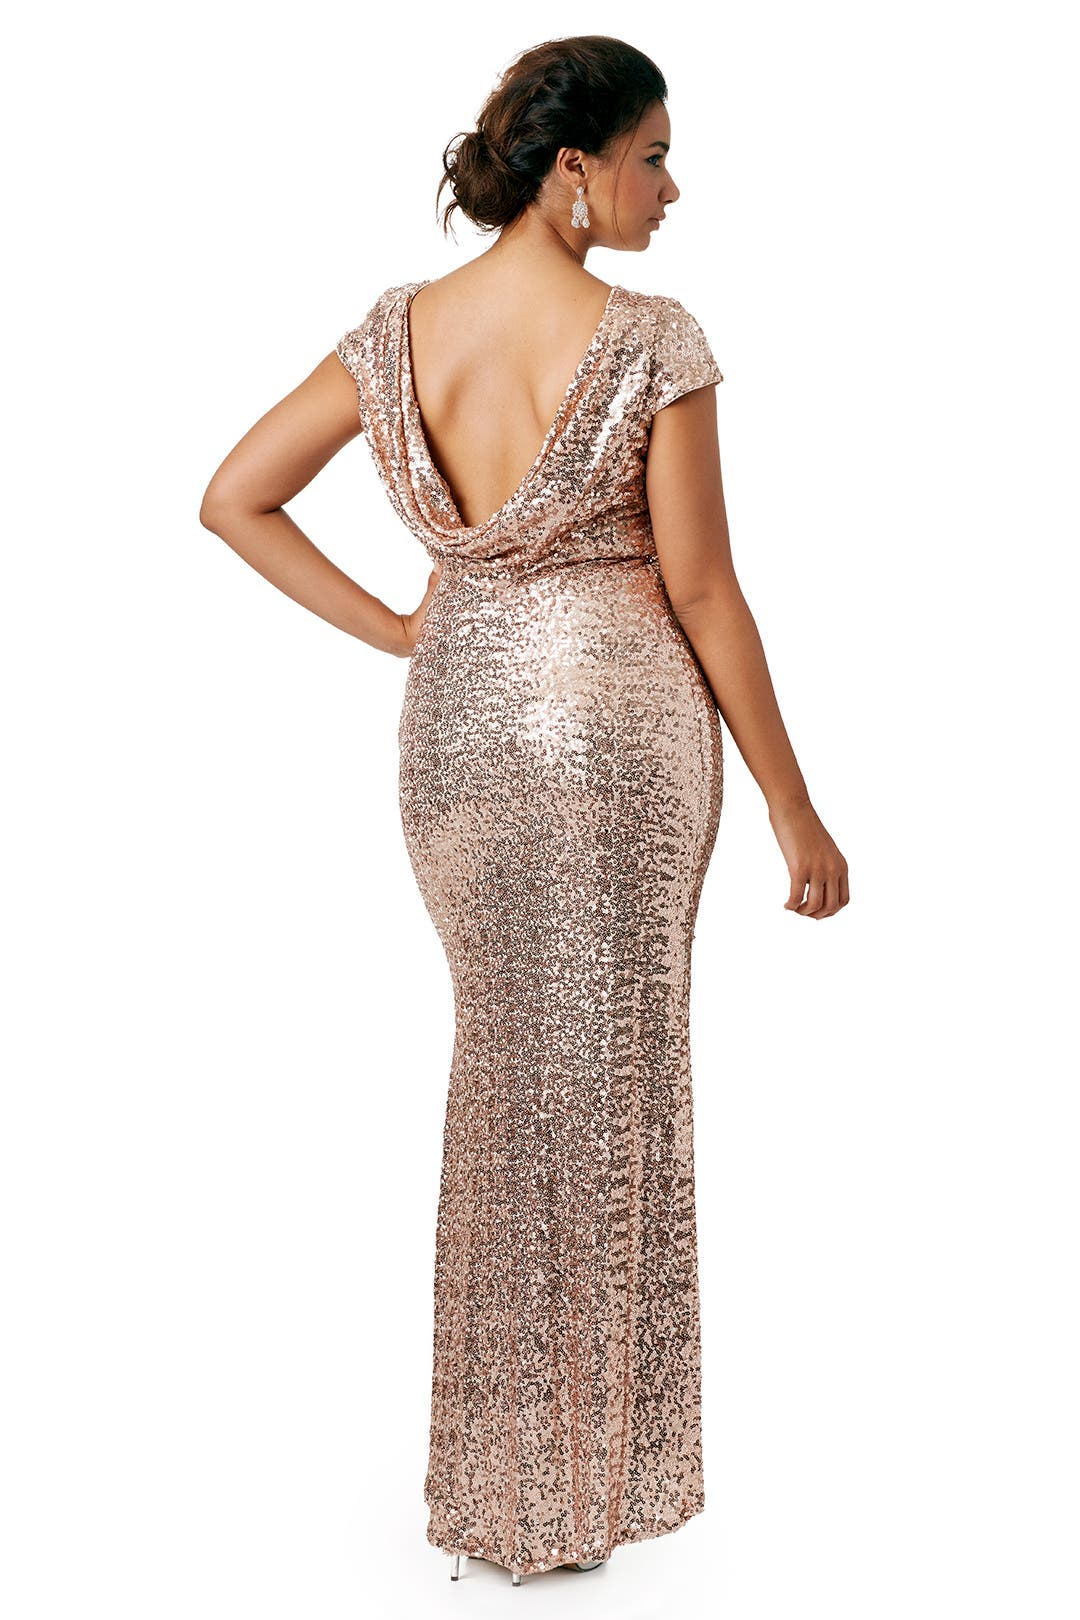 Shimmering Blush Gown by Badgley Mischka for $90 | Rent the Runway